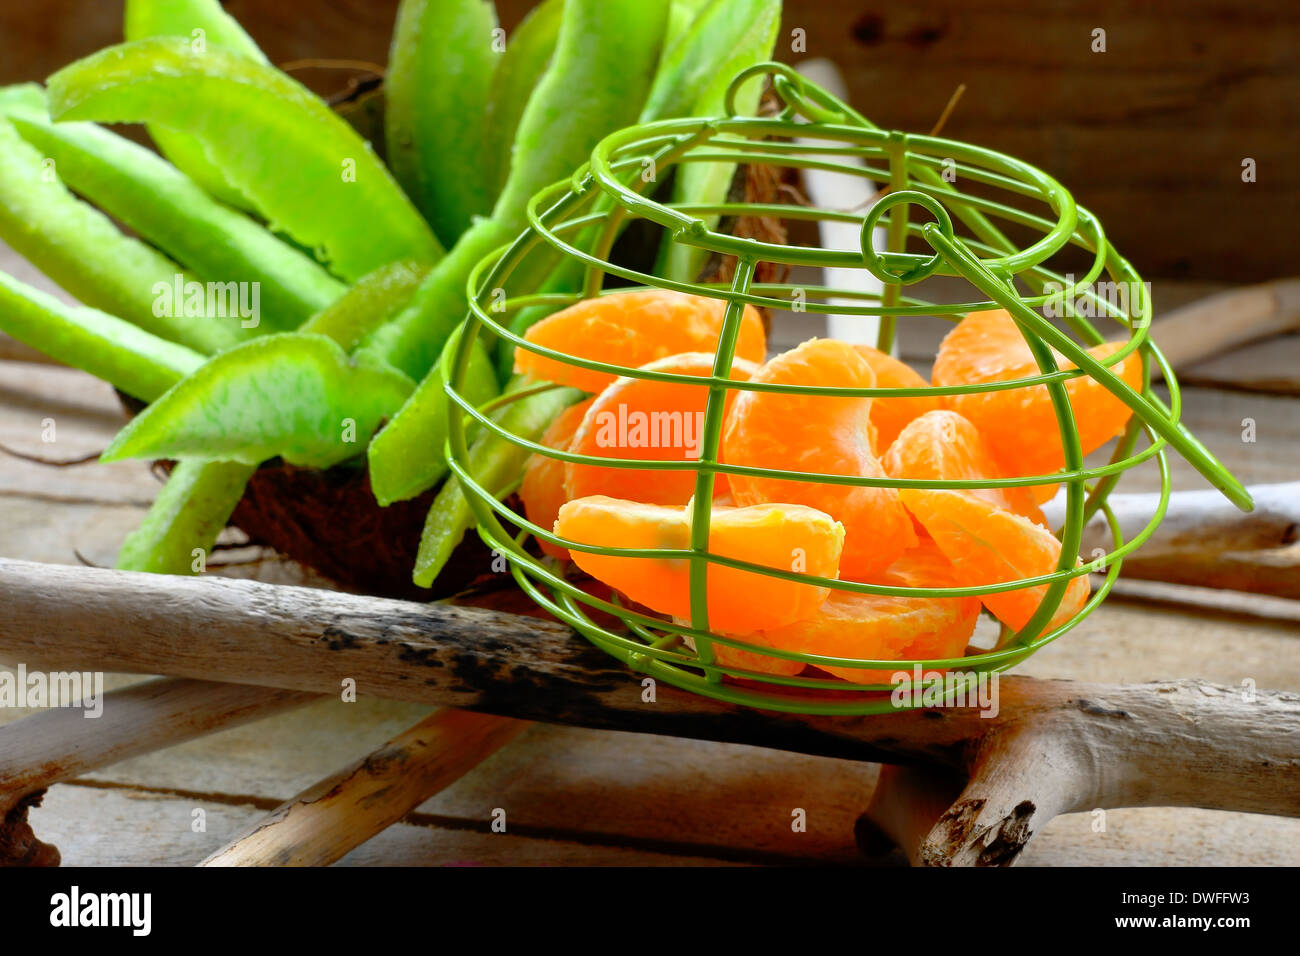 Little basket with fruit - Stock Image